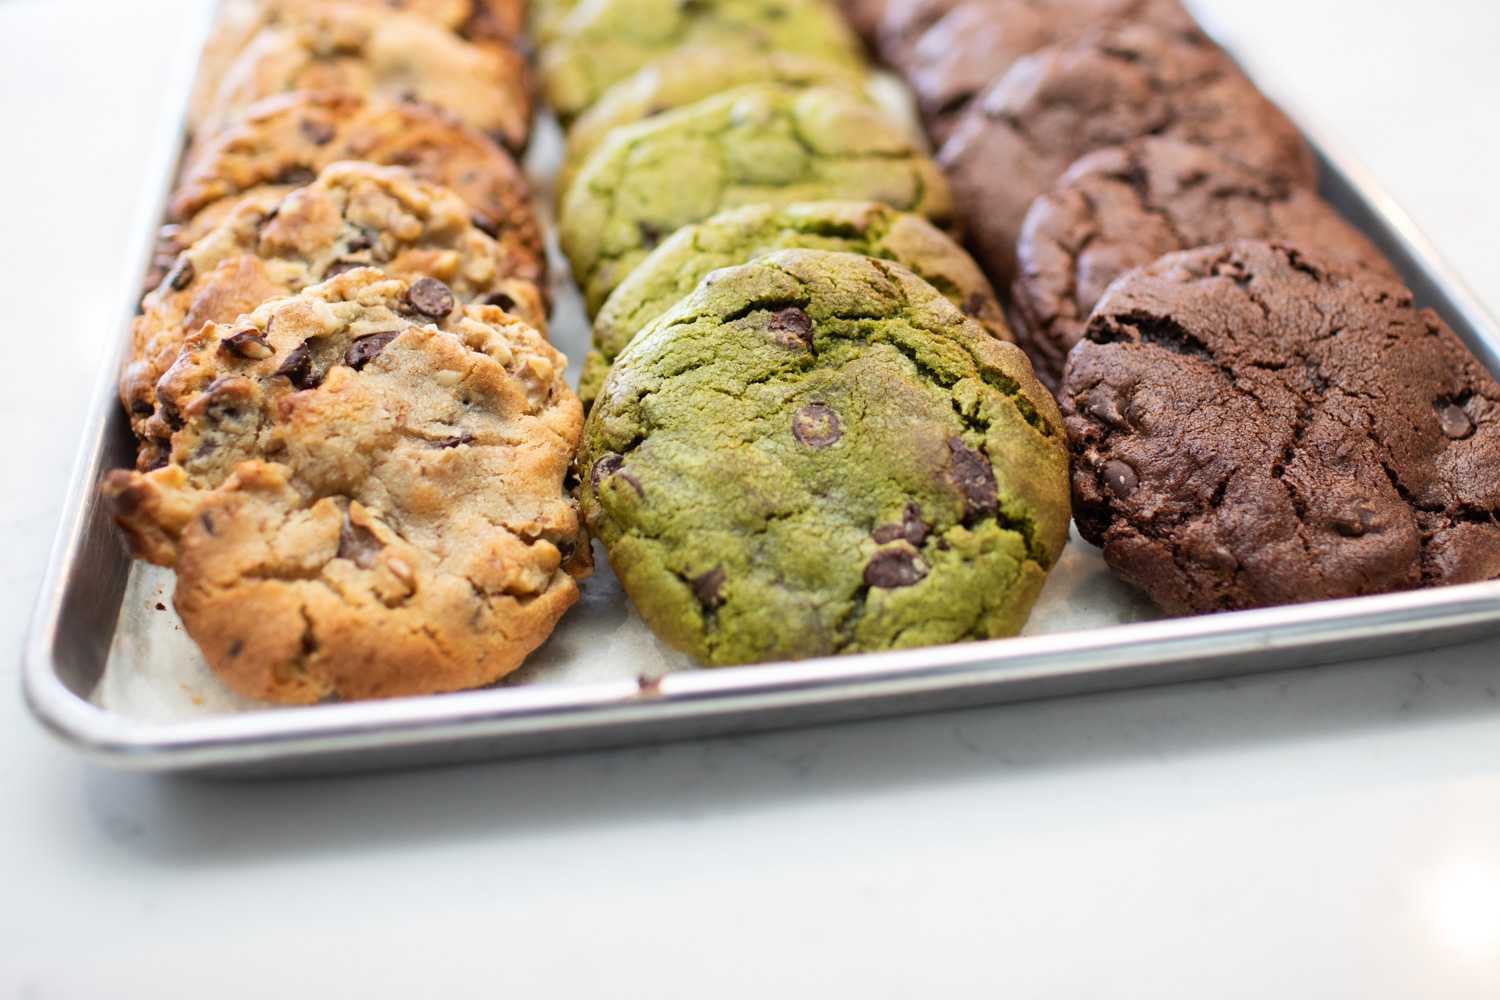 Homemade cookies at Momo Cafe. Flavors include matcha, dark chocolate, and chocolate chip walnut. Yum!